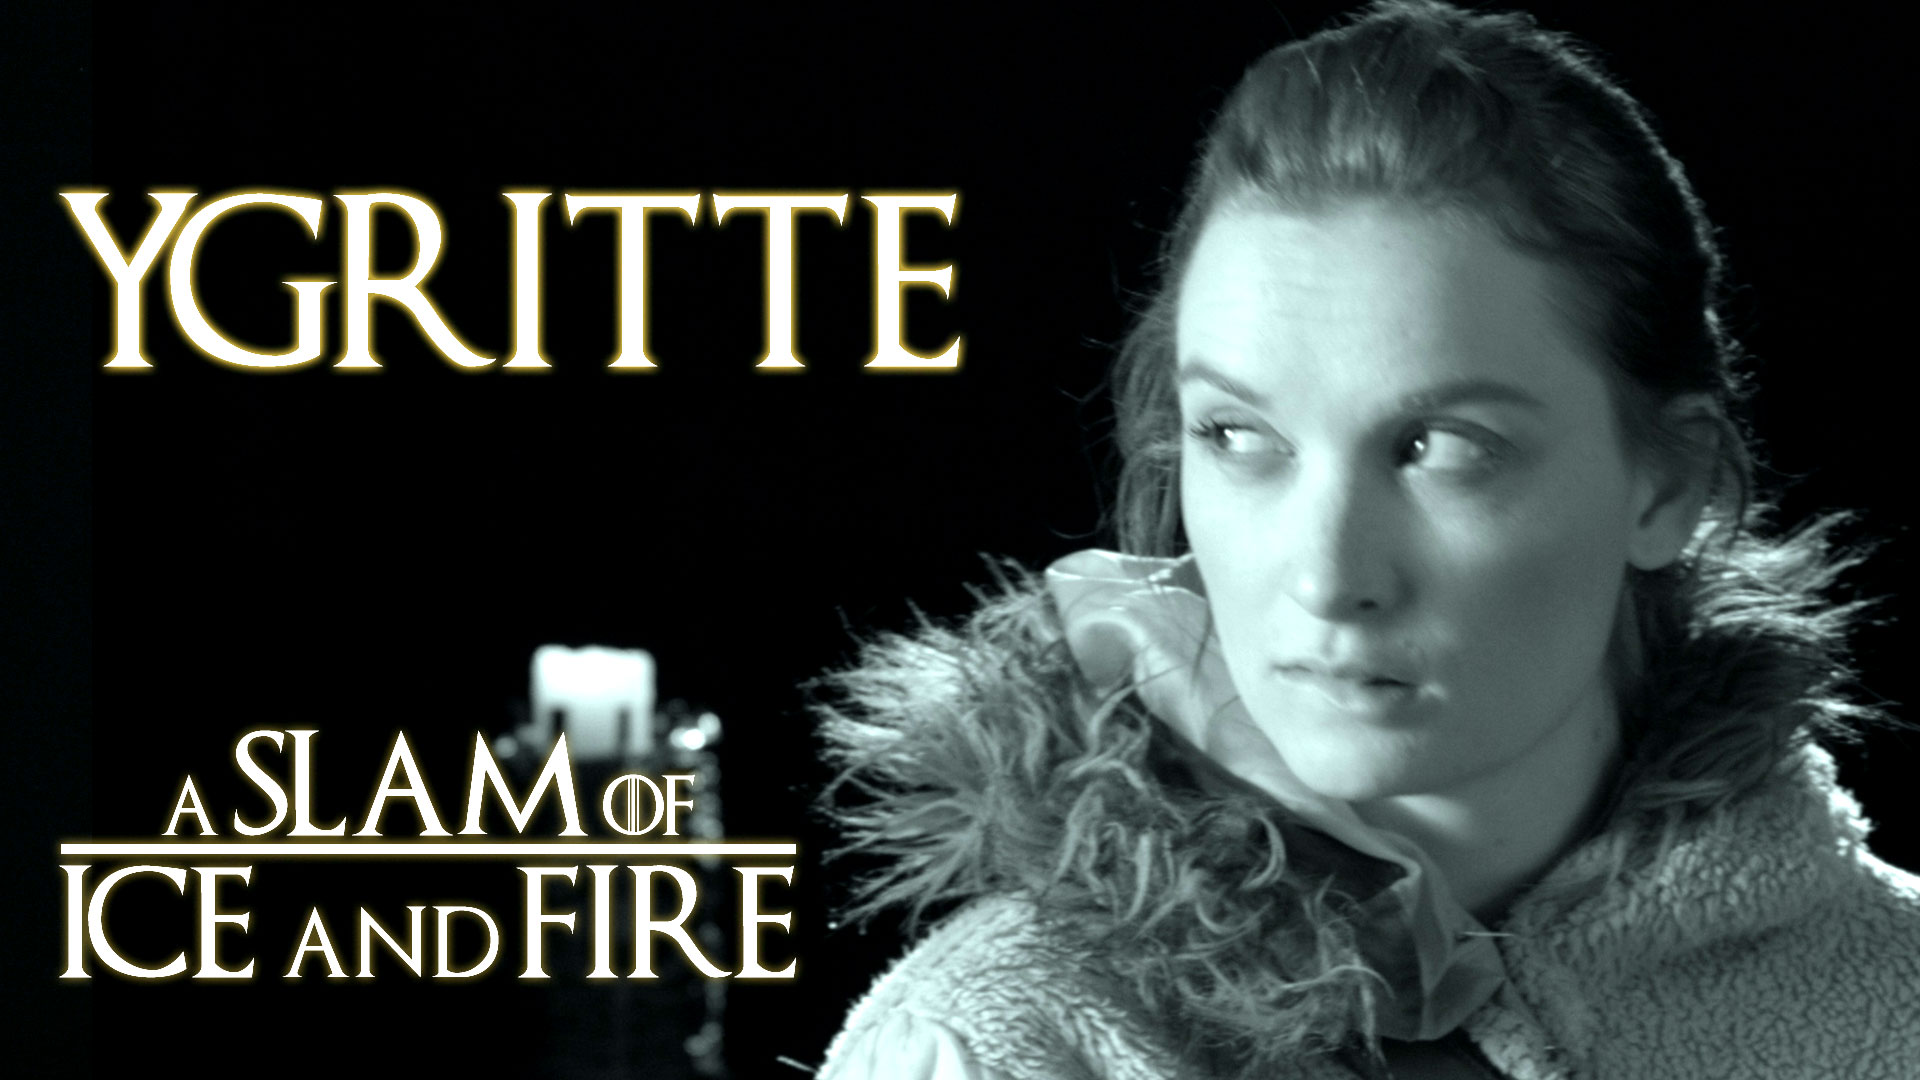 Ygritte – A Slam of Ice and Fire || Spoken Word